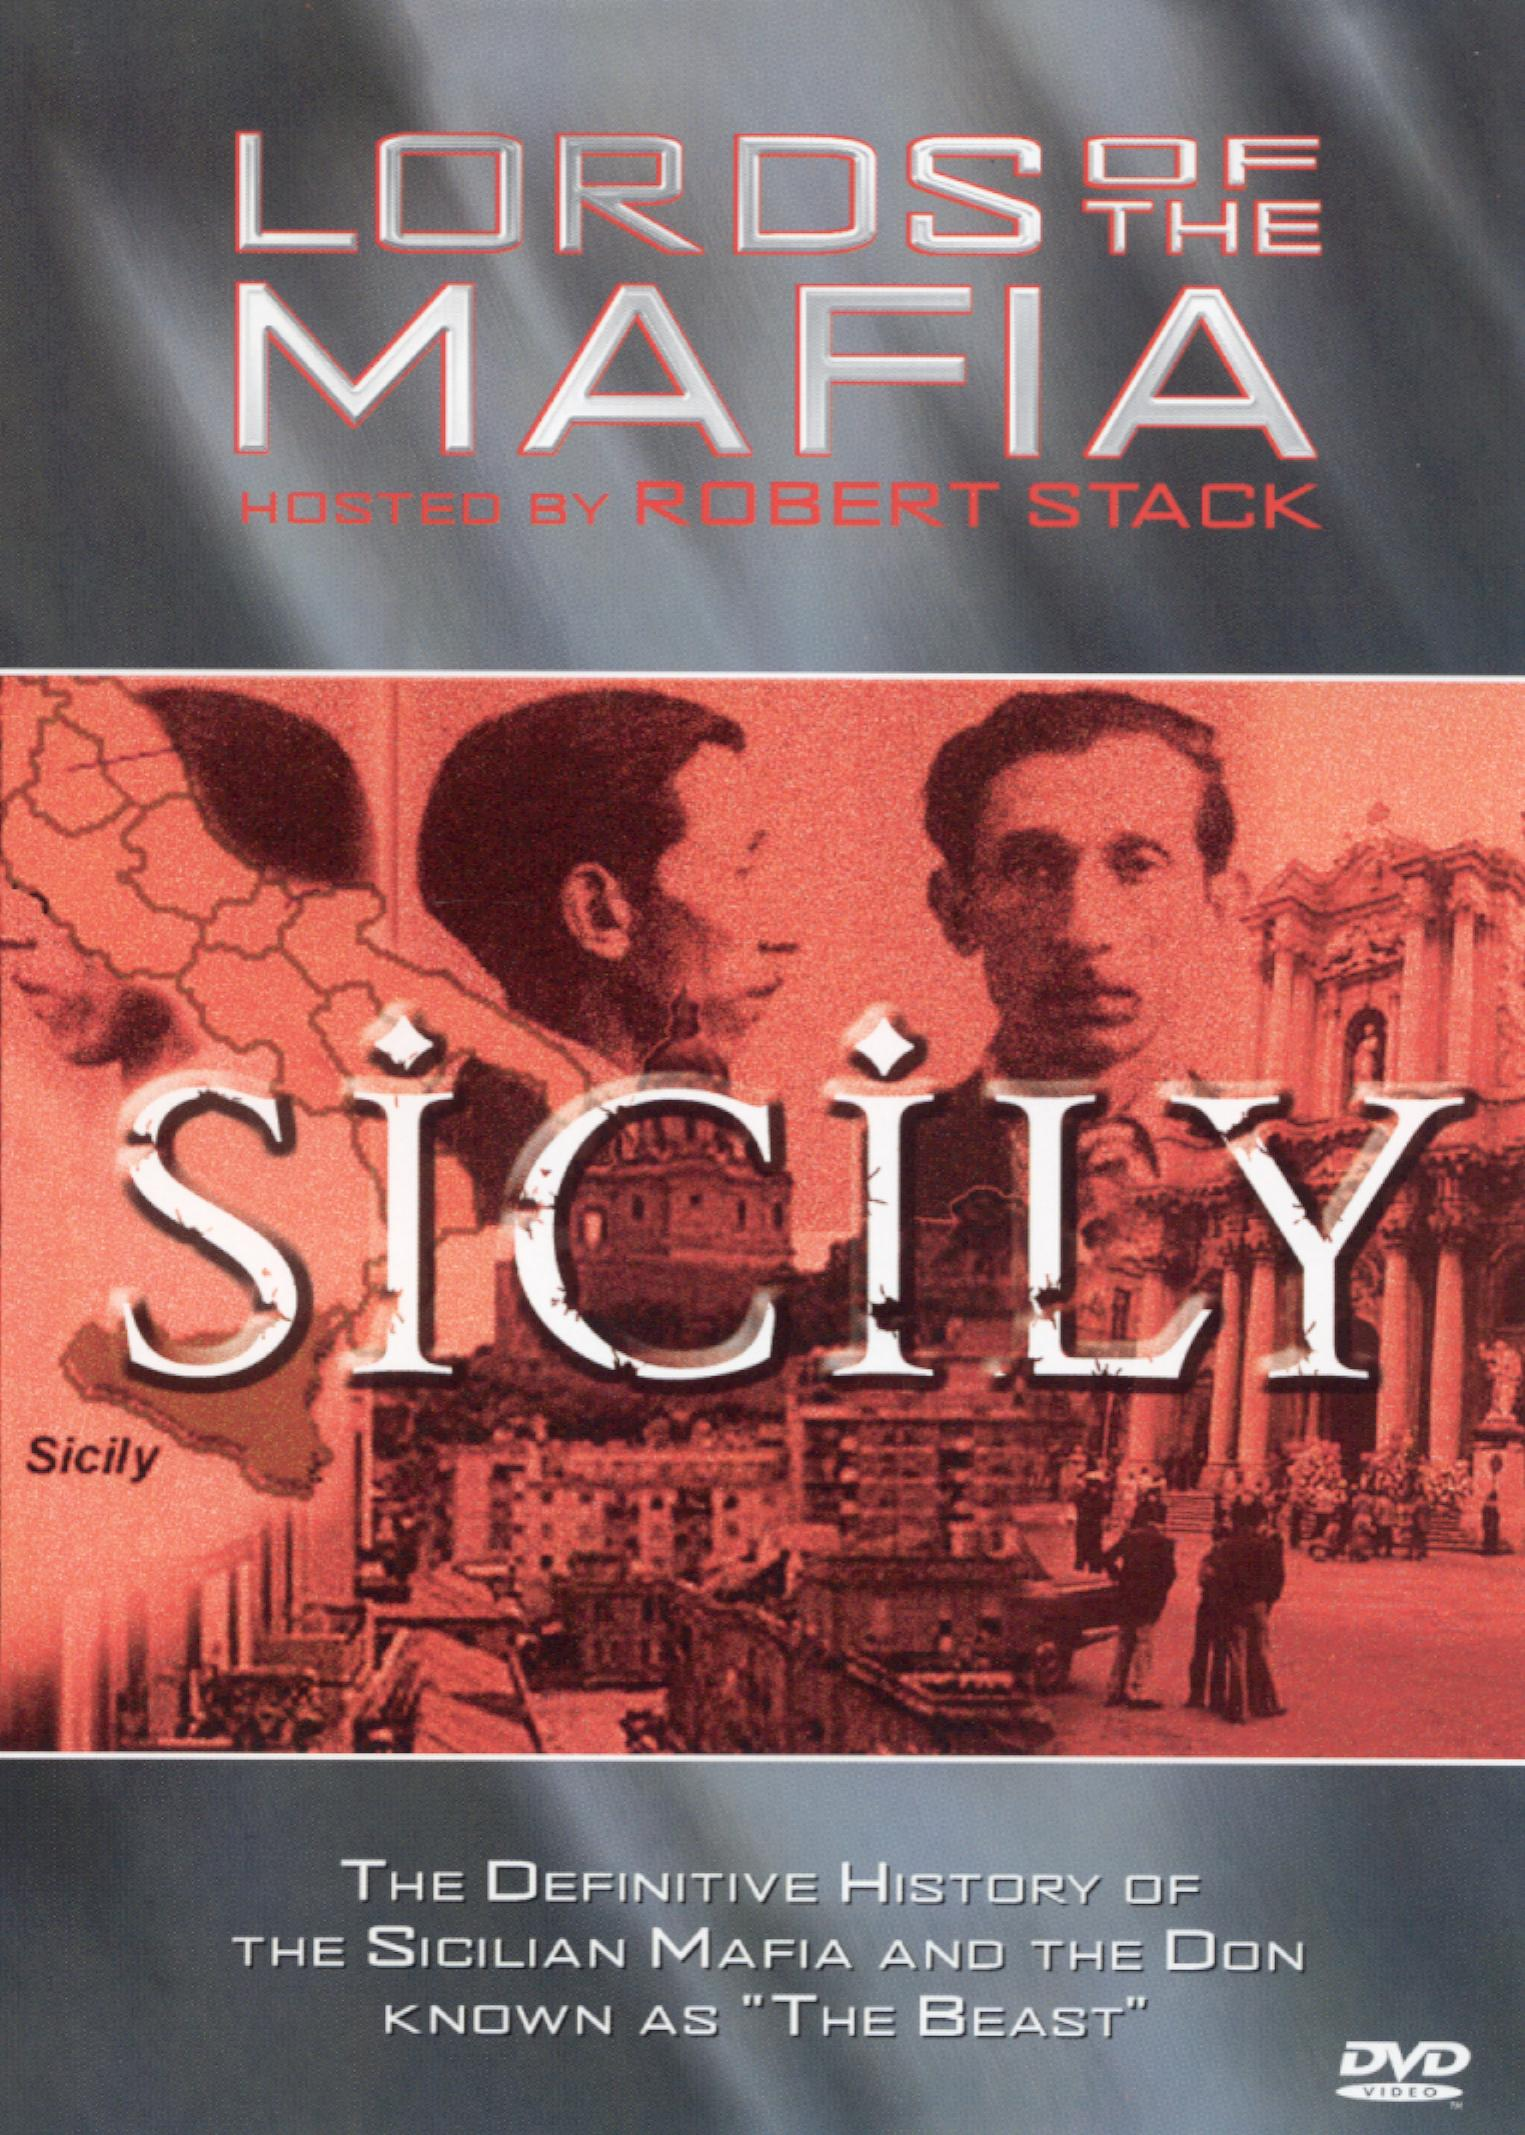 a history of the sicilian mafia in the united states Giuseppe esposito was the first known sicilian mafia member to emigrate to the united states he and six other sicilian mafioso fled to new york after murdering eleven wealthy landowners as well as the chancellor and a vice chancellor of a sicilian province.